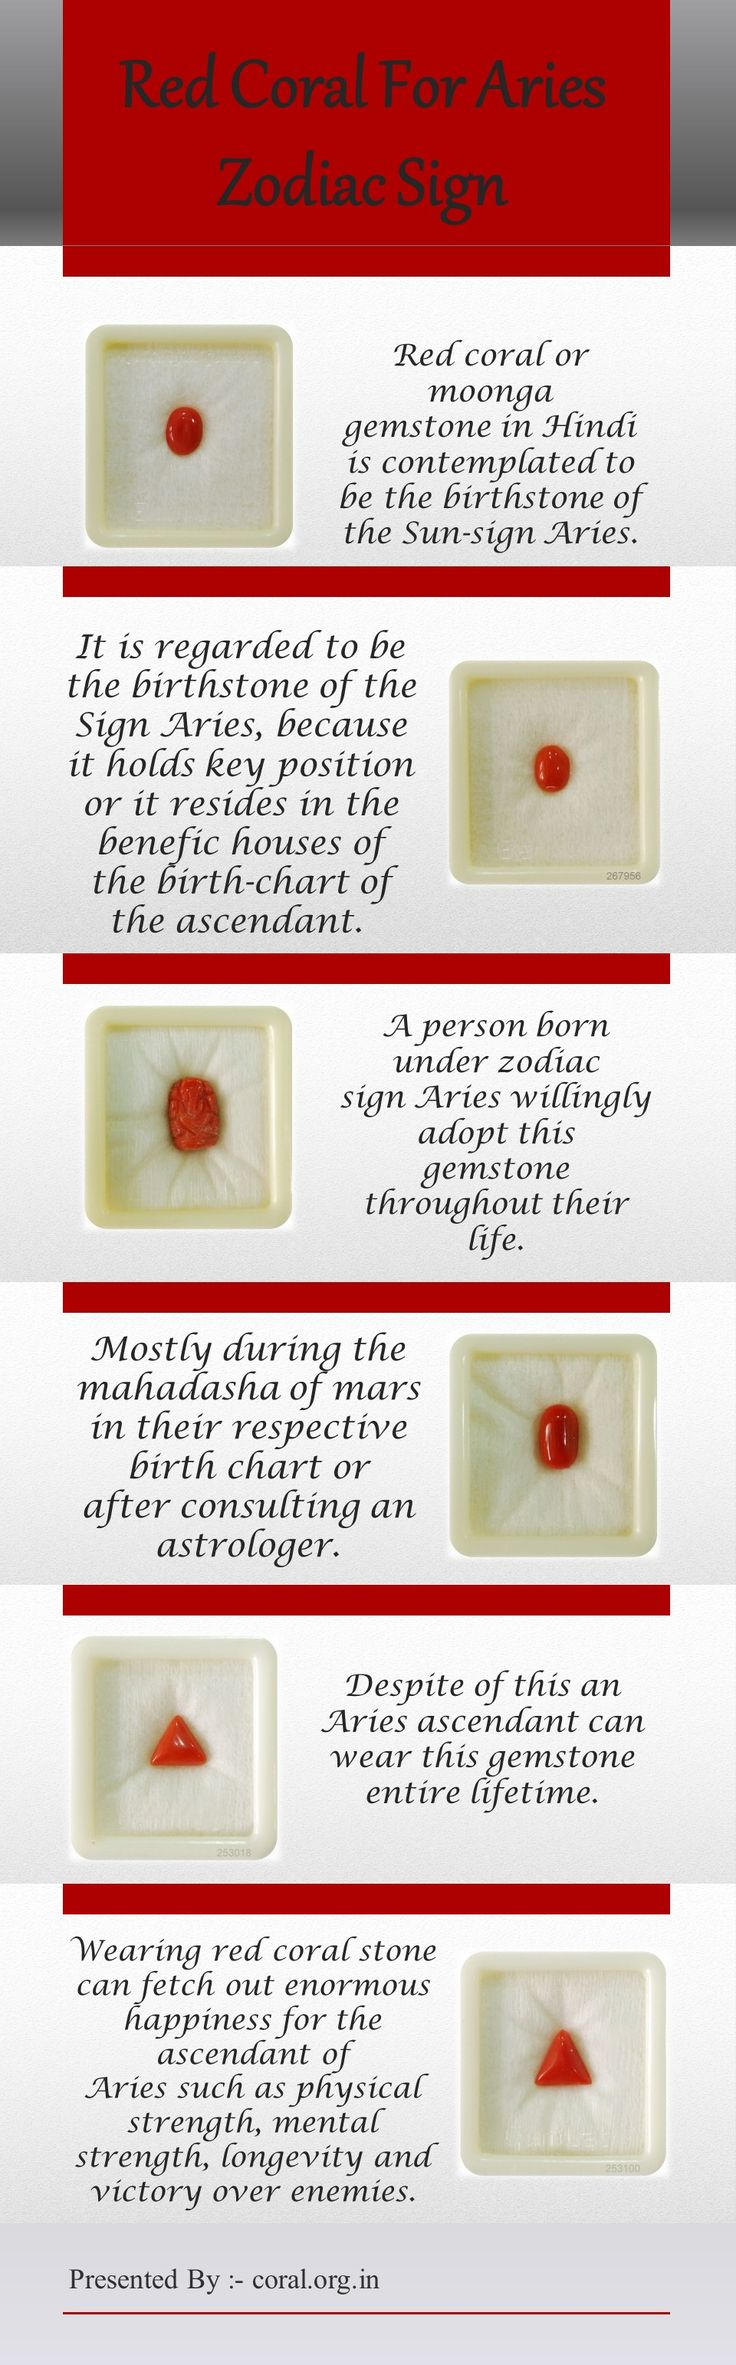 73 best coral for astrology images on pinterest astrology red buy certified coral gemstone moonga stone at affordable prices place online order for italian natural coral stone from best gemstone store in india nvjuhfo Choice Image